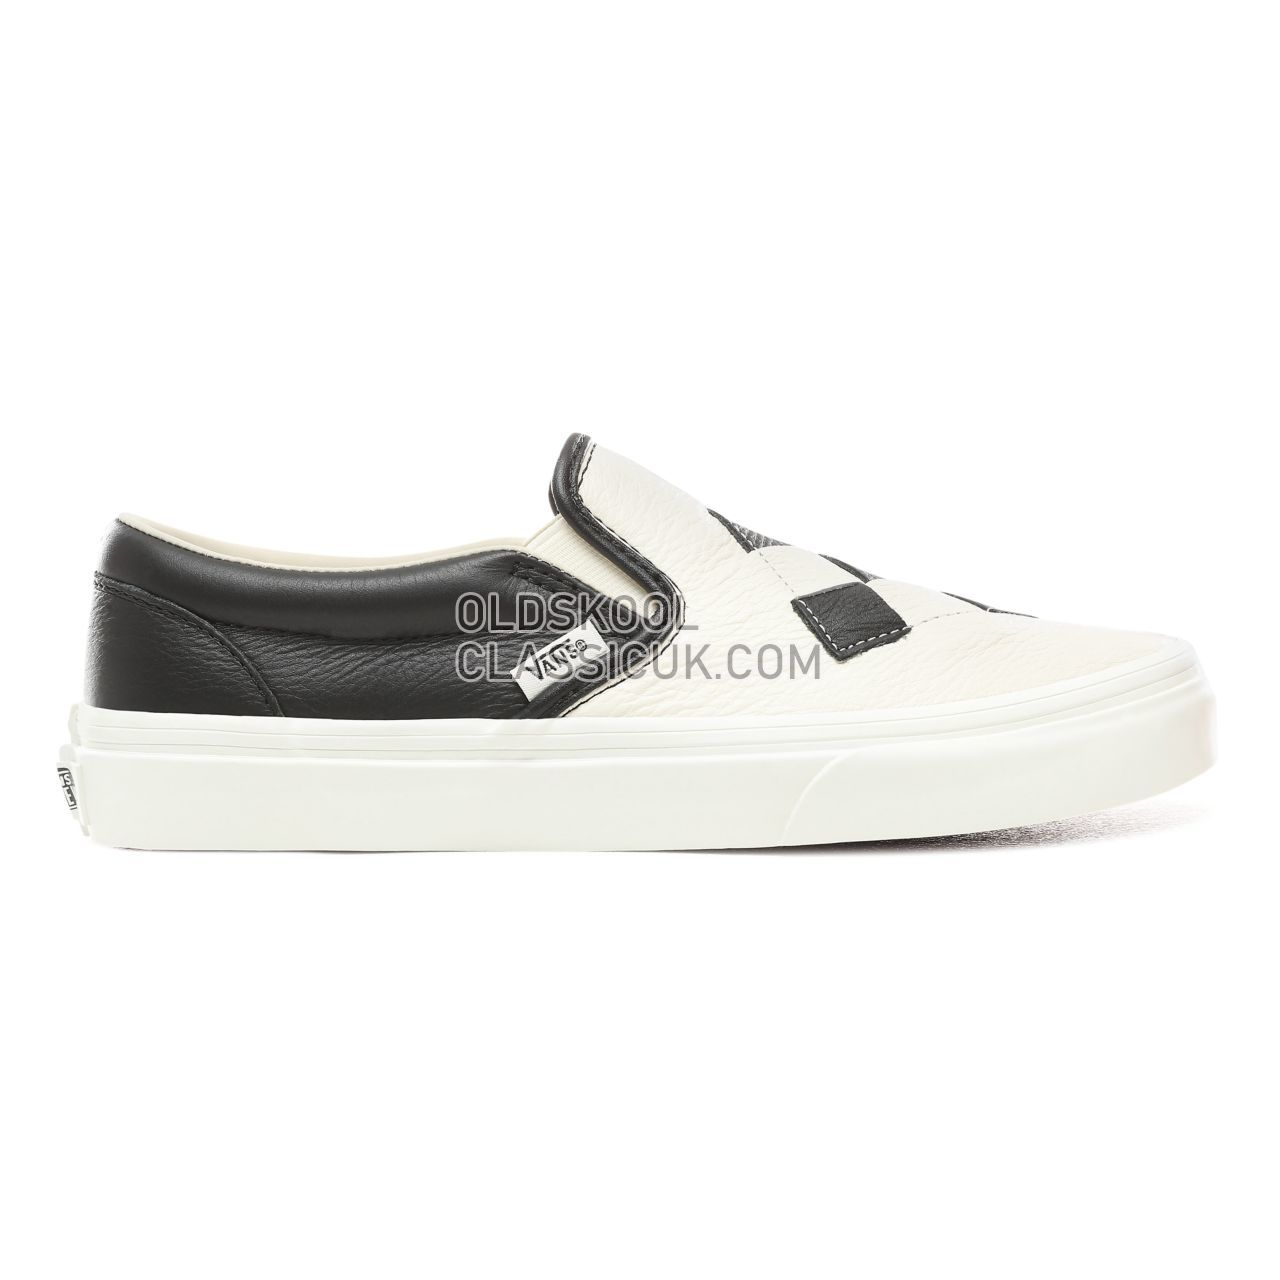 Vans Woven Leather Slip-On Sneakers Womens (Woven Leather) Checkerboard/Snow White VN0A38F7VMW Shoes